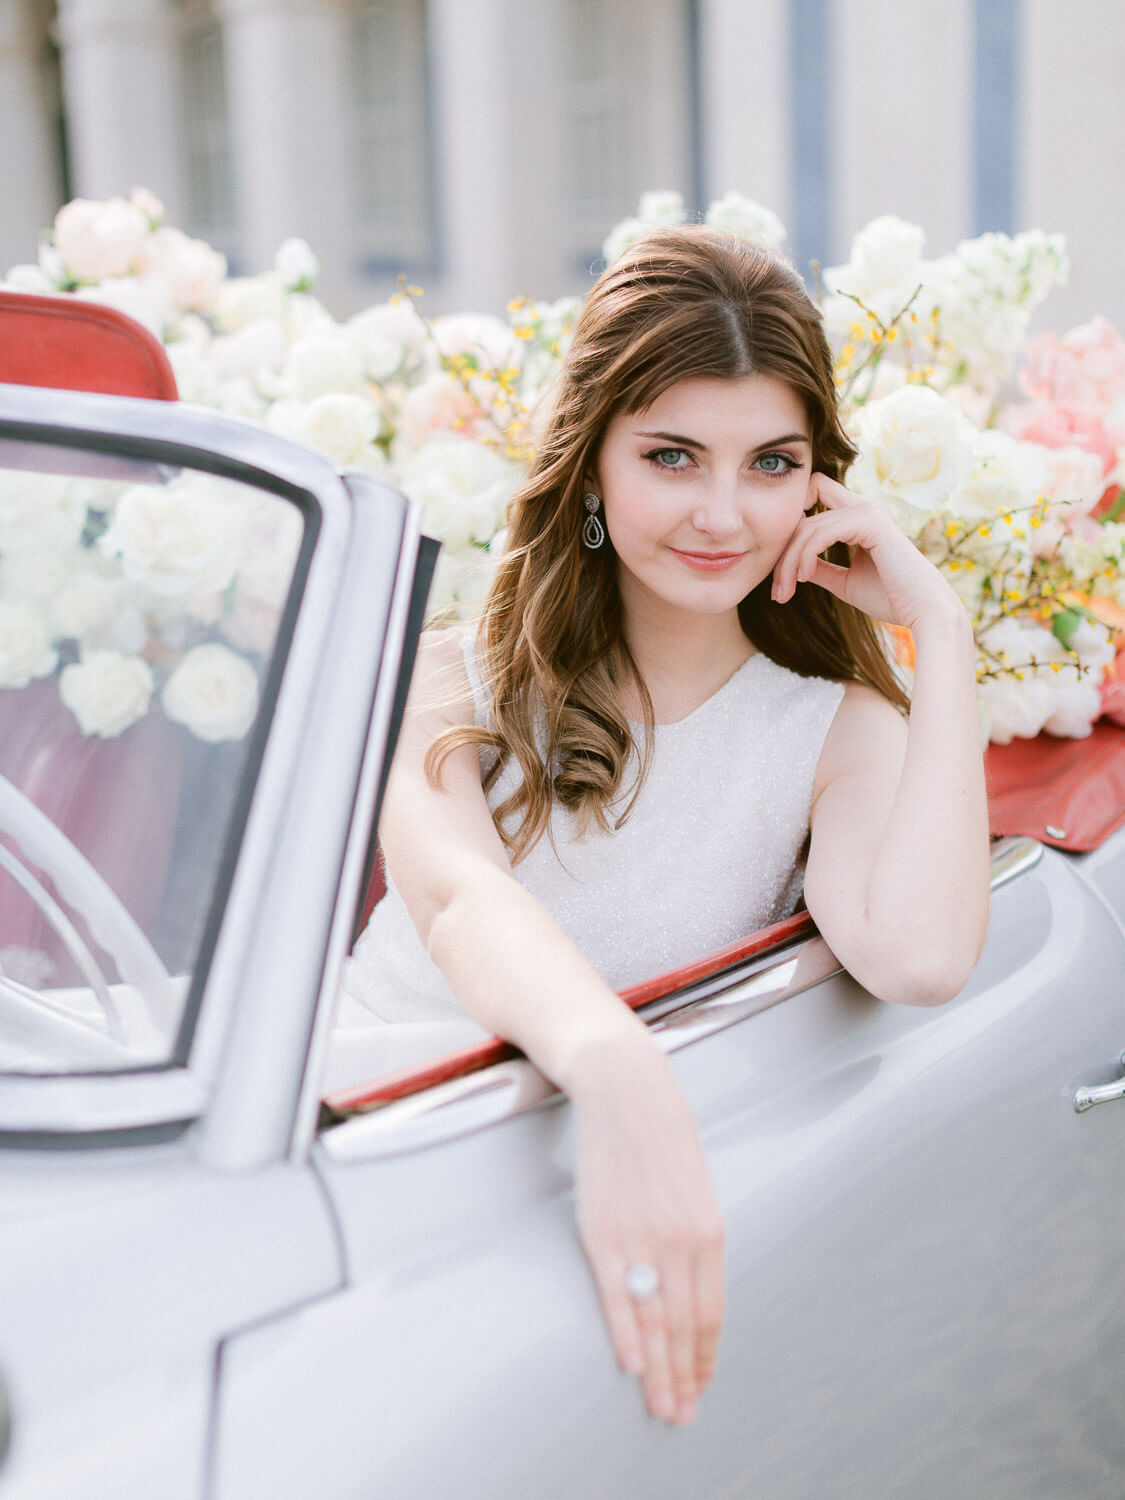 Beautiful bride's portrait in convertible car decorated with lots of white flowers